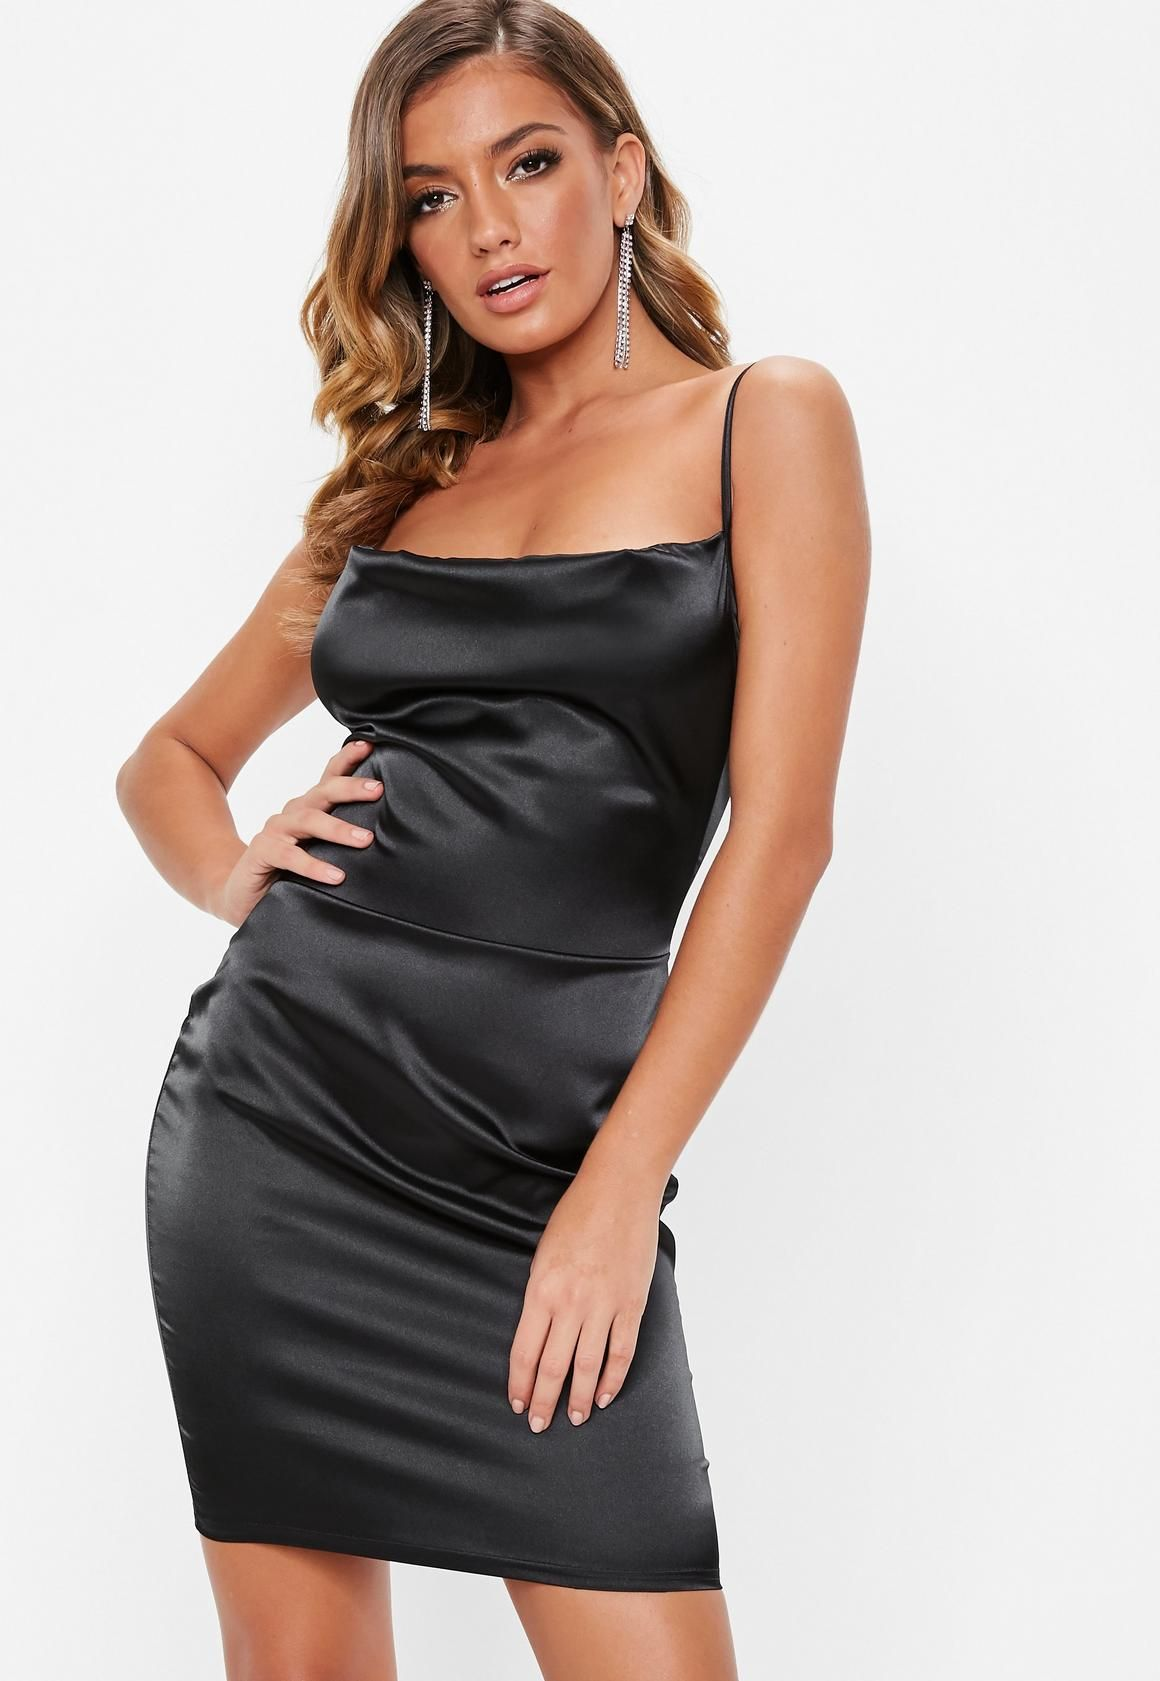 Friendly Seductive Sequined Glitter Cocktail Party Midi Dress Women Sexy Deep V Neck Low Back Crossover Straps Bodycon Draped Neckline Cocktail Dresses